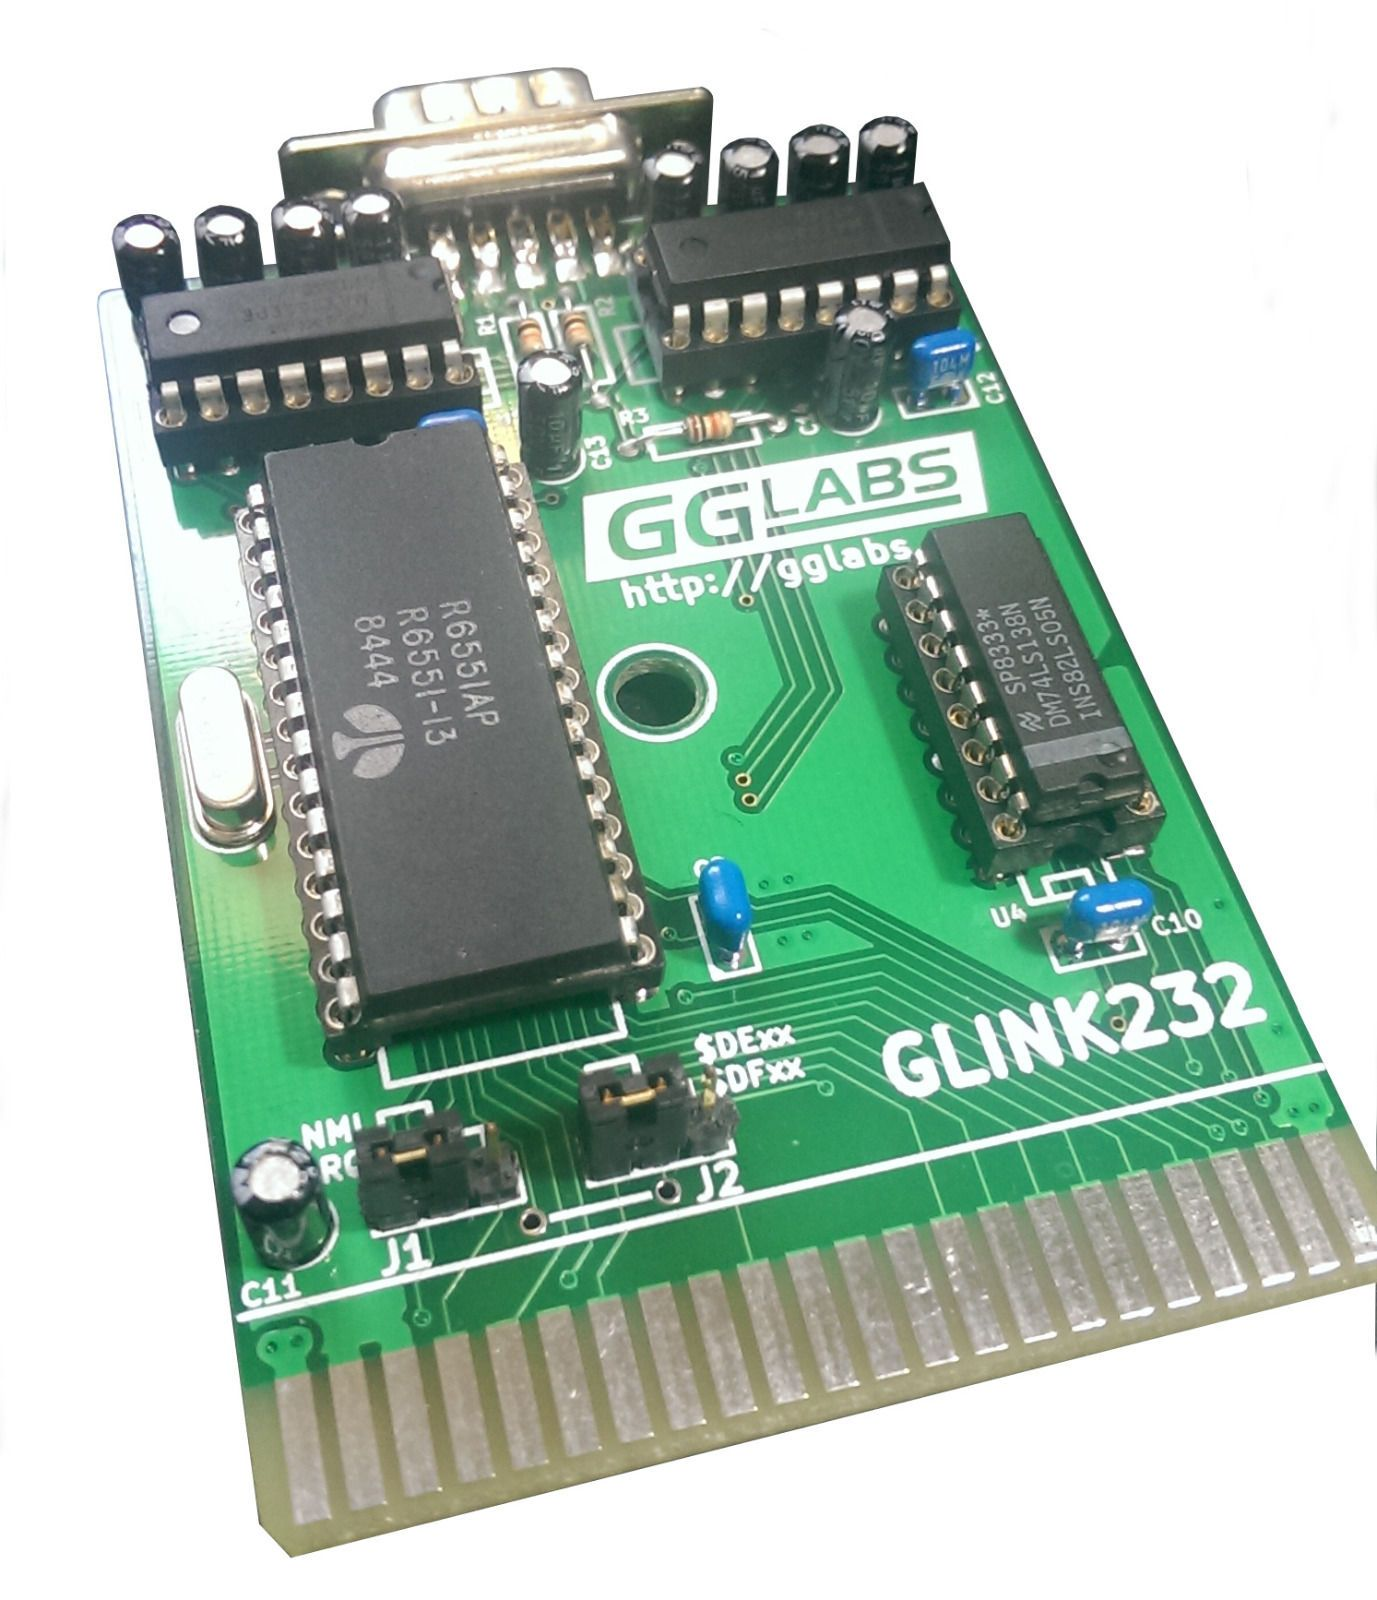 Commodore 64 128 GLink232 RS232 Serial Card, 6551 UART